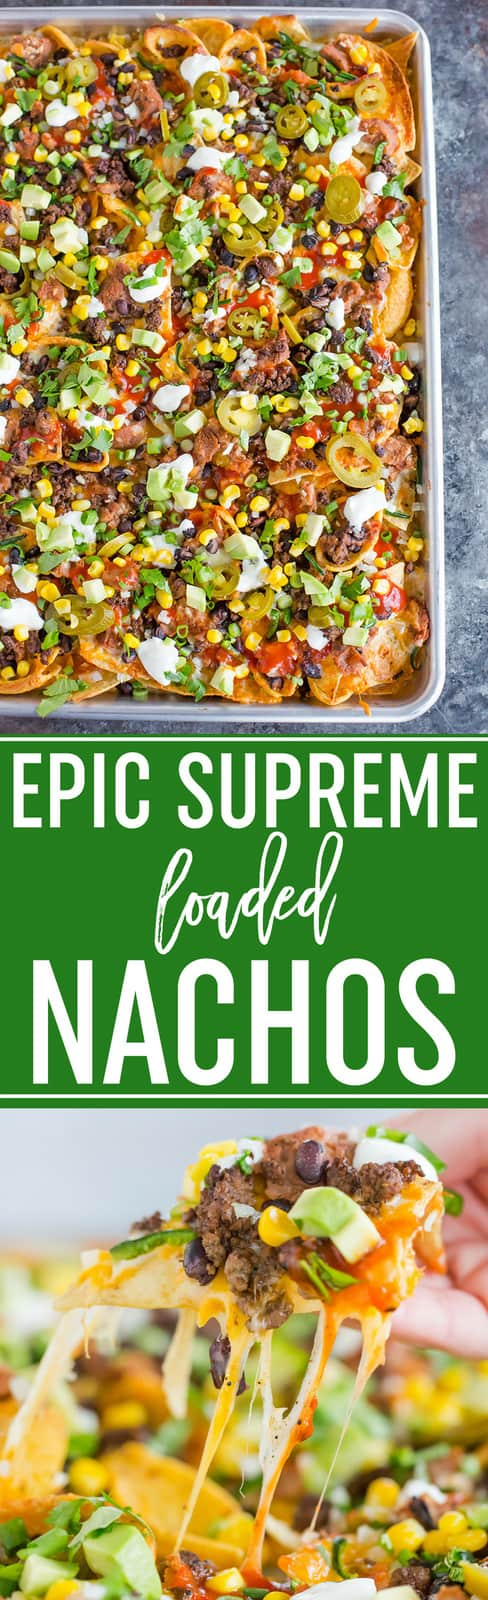 Epic Supreme Loaded Nachos :: The absolute epitome of loaded nachos... a mixture of tortilla and corn chips topped with tons of cheese and all of the best toppings you could imagine! #appetizers #partyfood #footballfood #superbowl #nachos